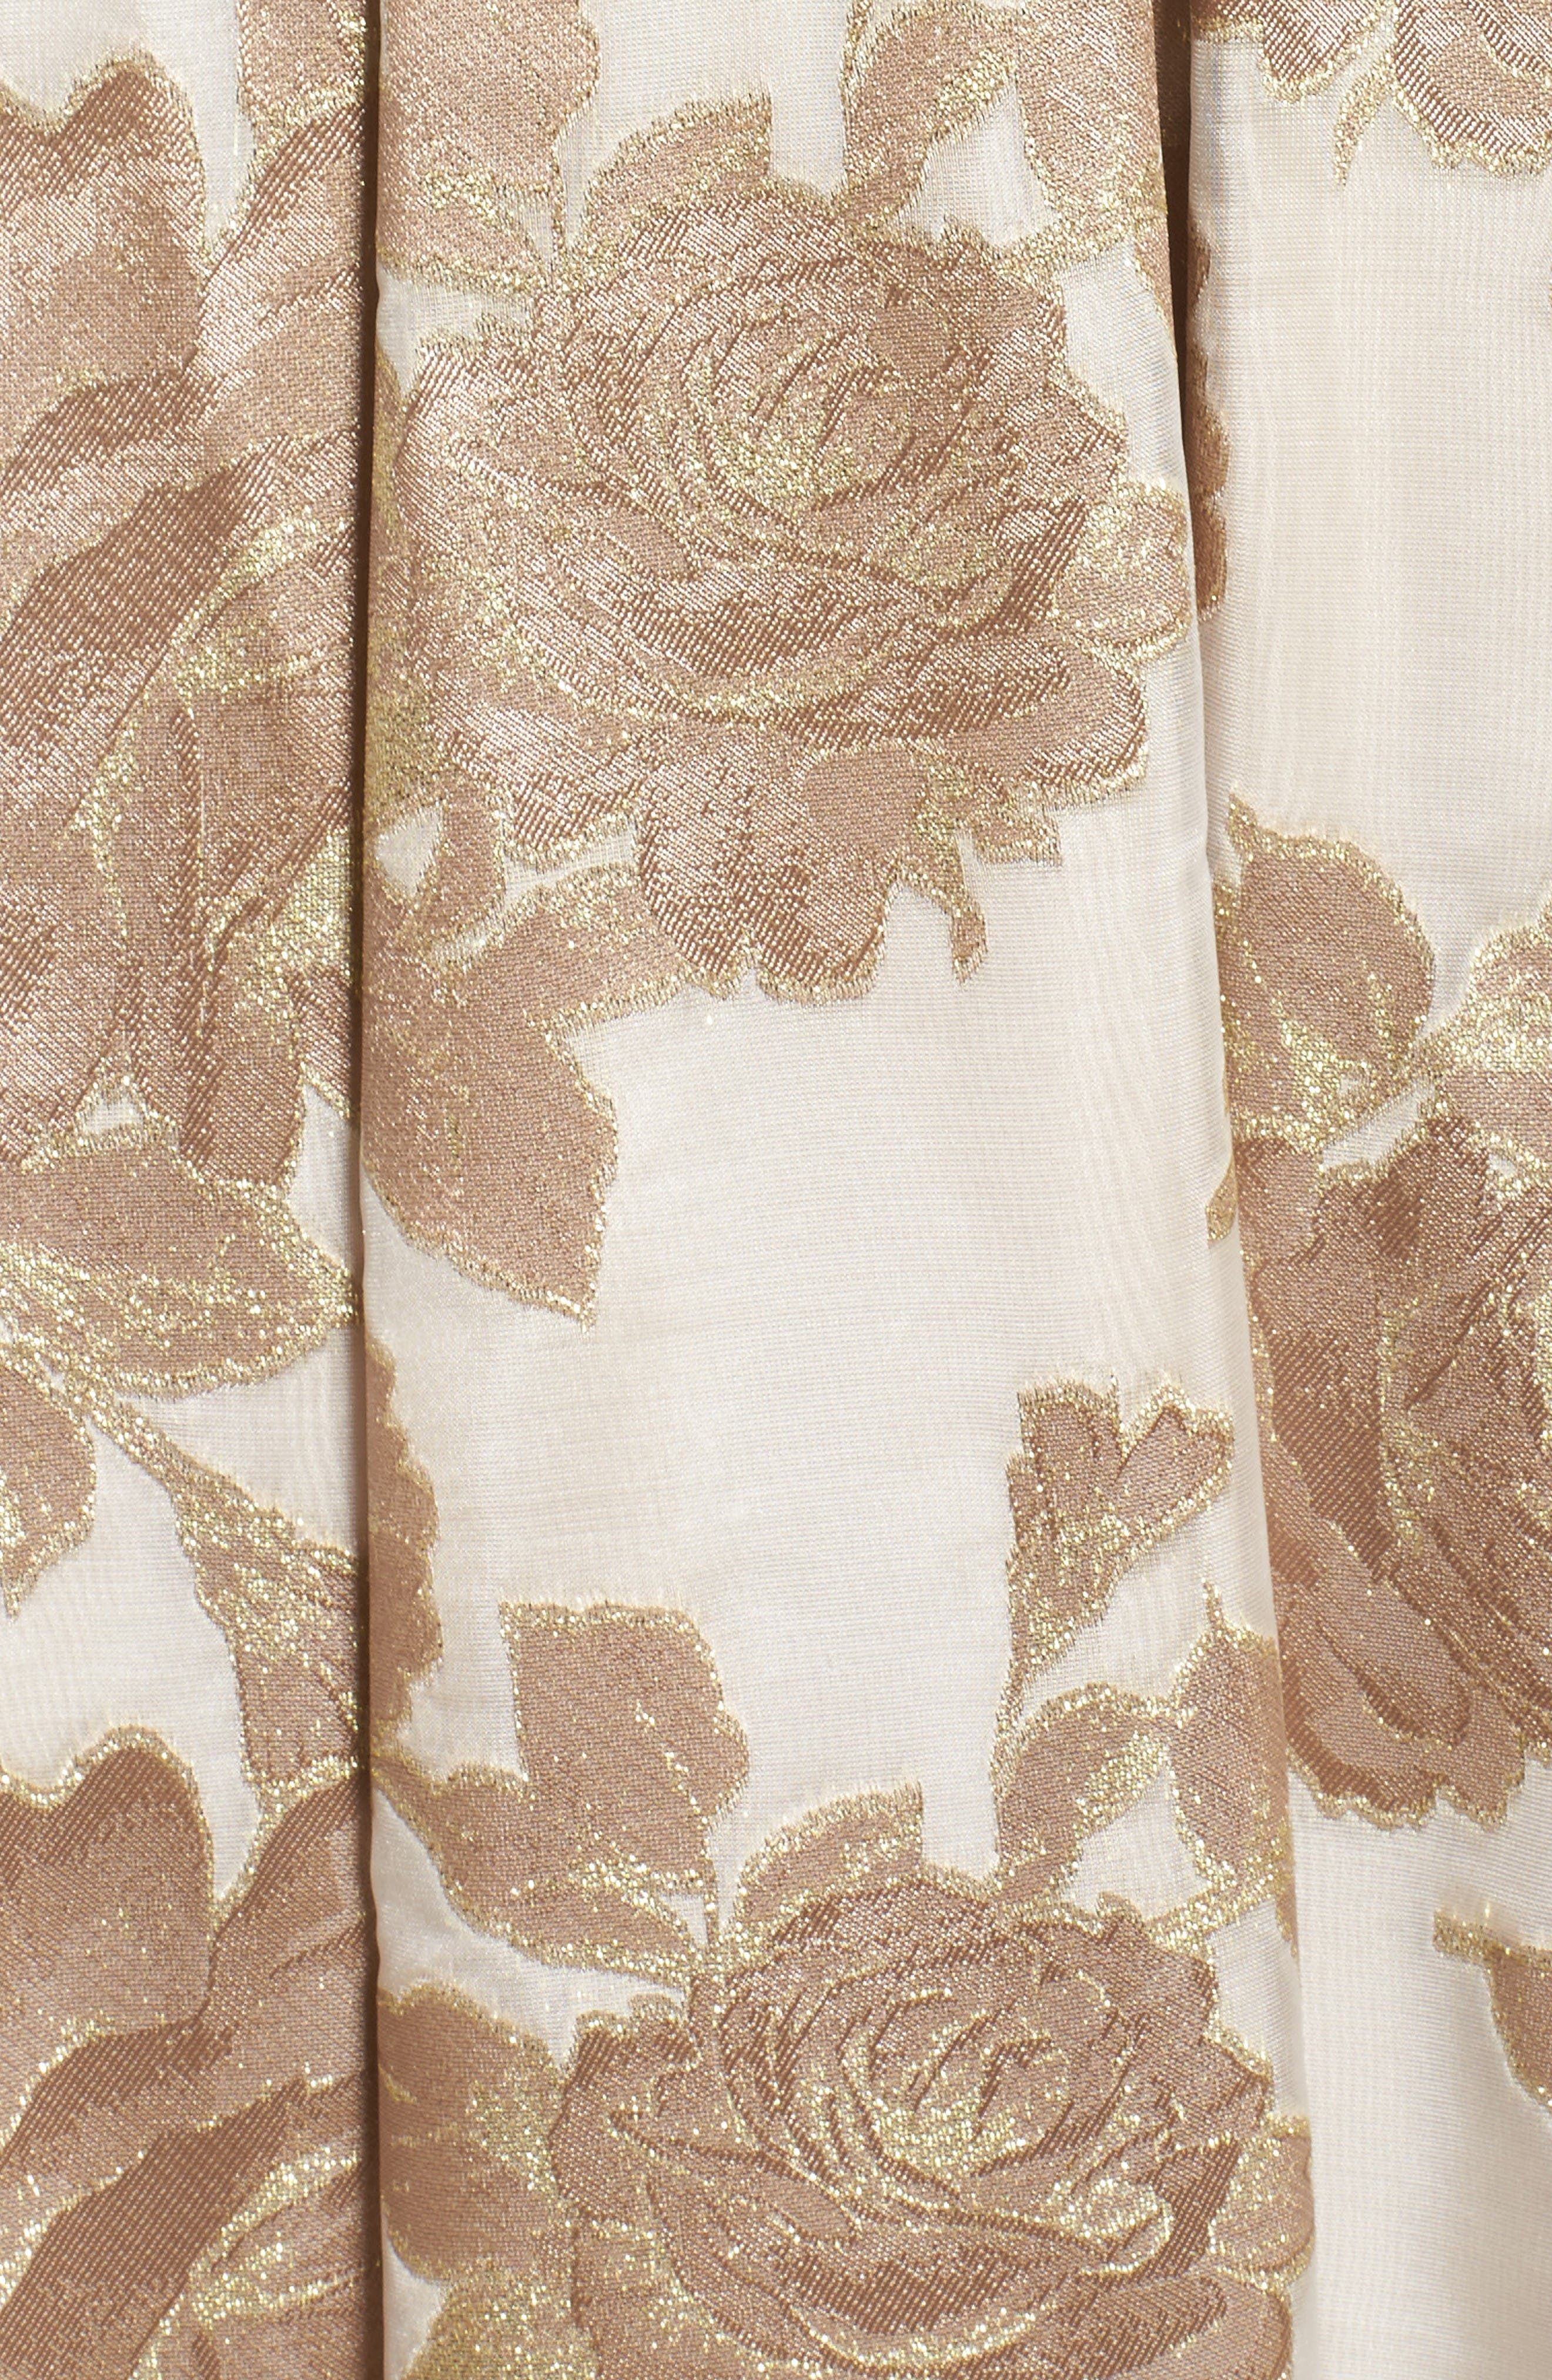 Embellished Floral Jacquard Fit & Flare Gown,                             Alternate thumbnail 5, color,                             Champagne